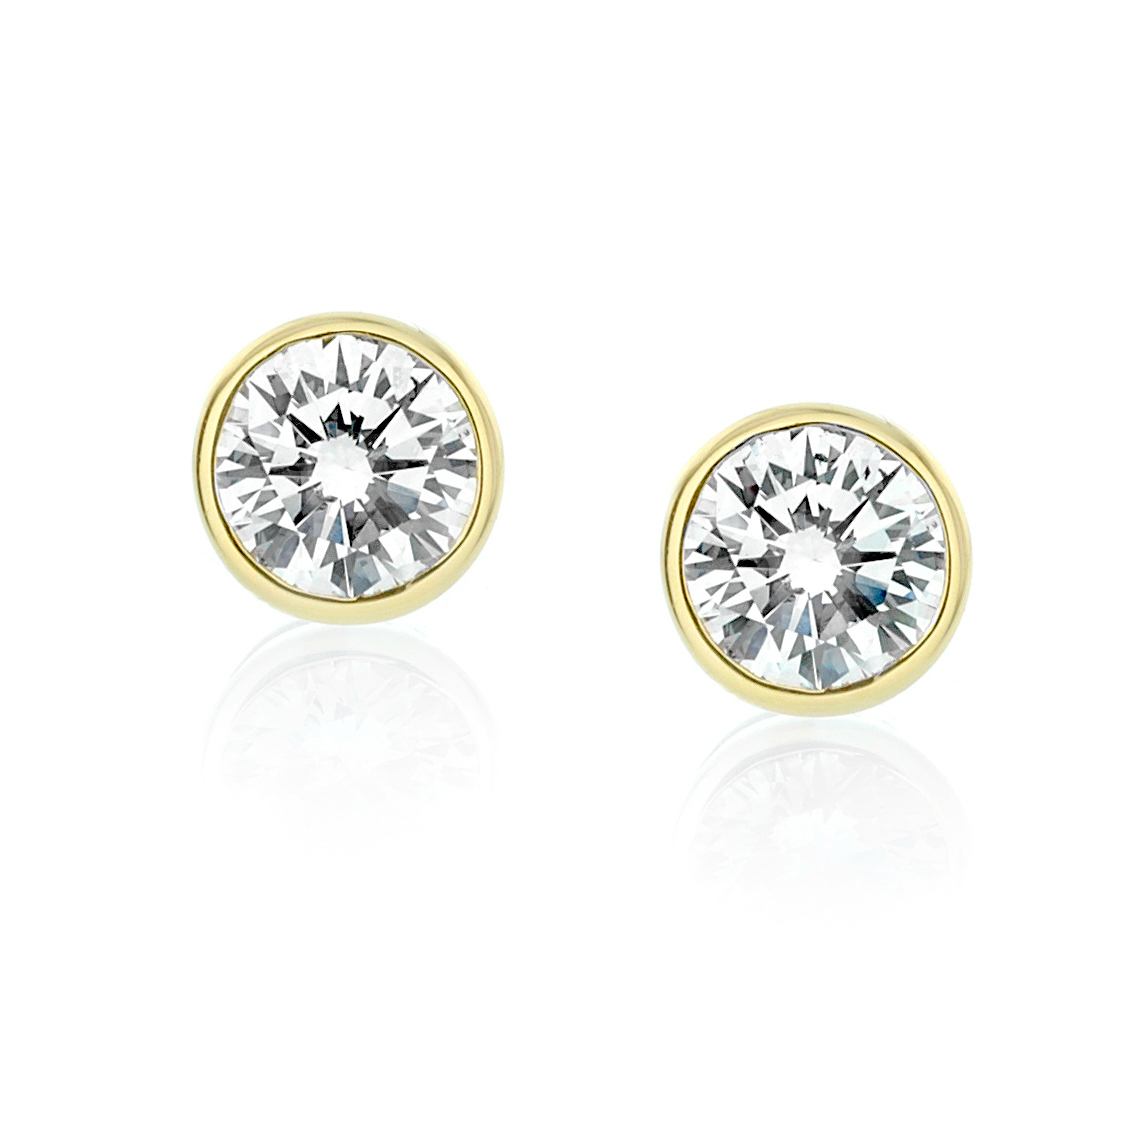 earring white round rng gold diamond studs earrings stud illusion bezel set mens womens